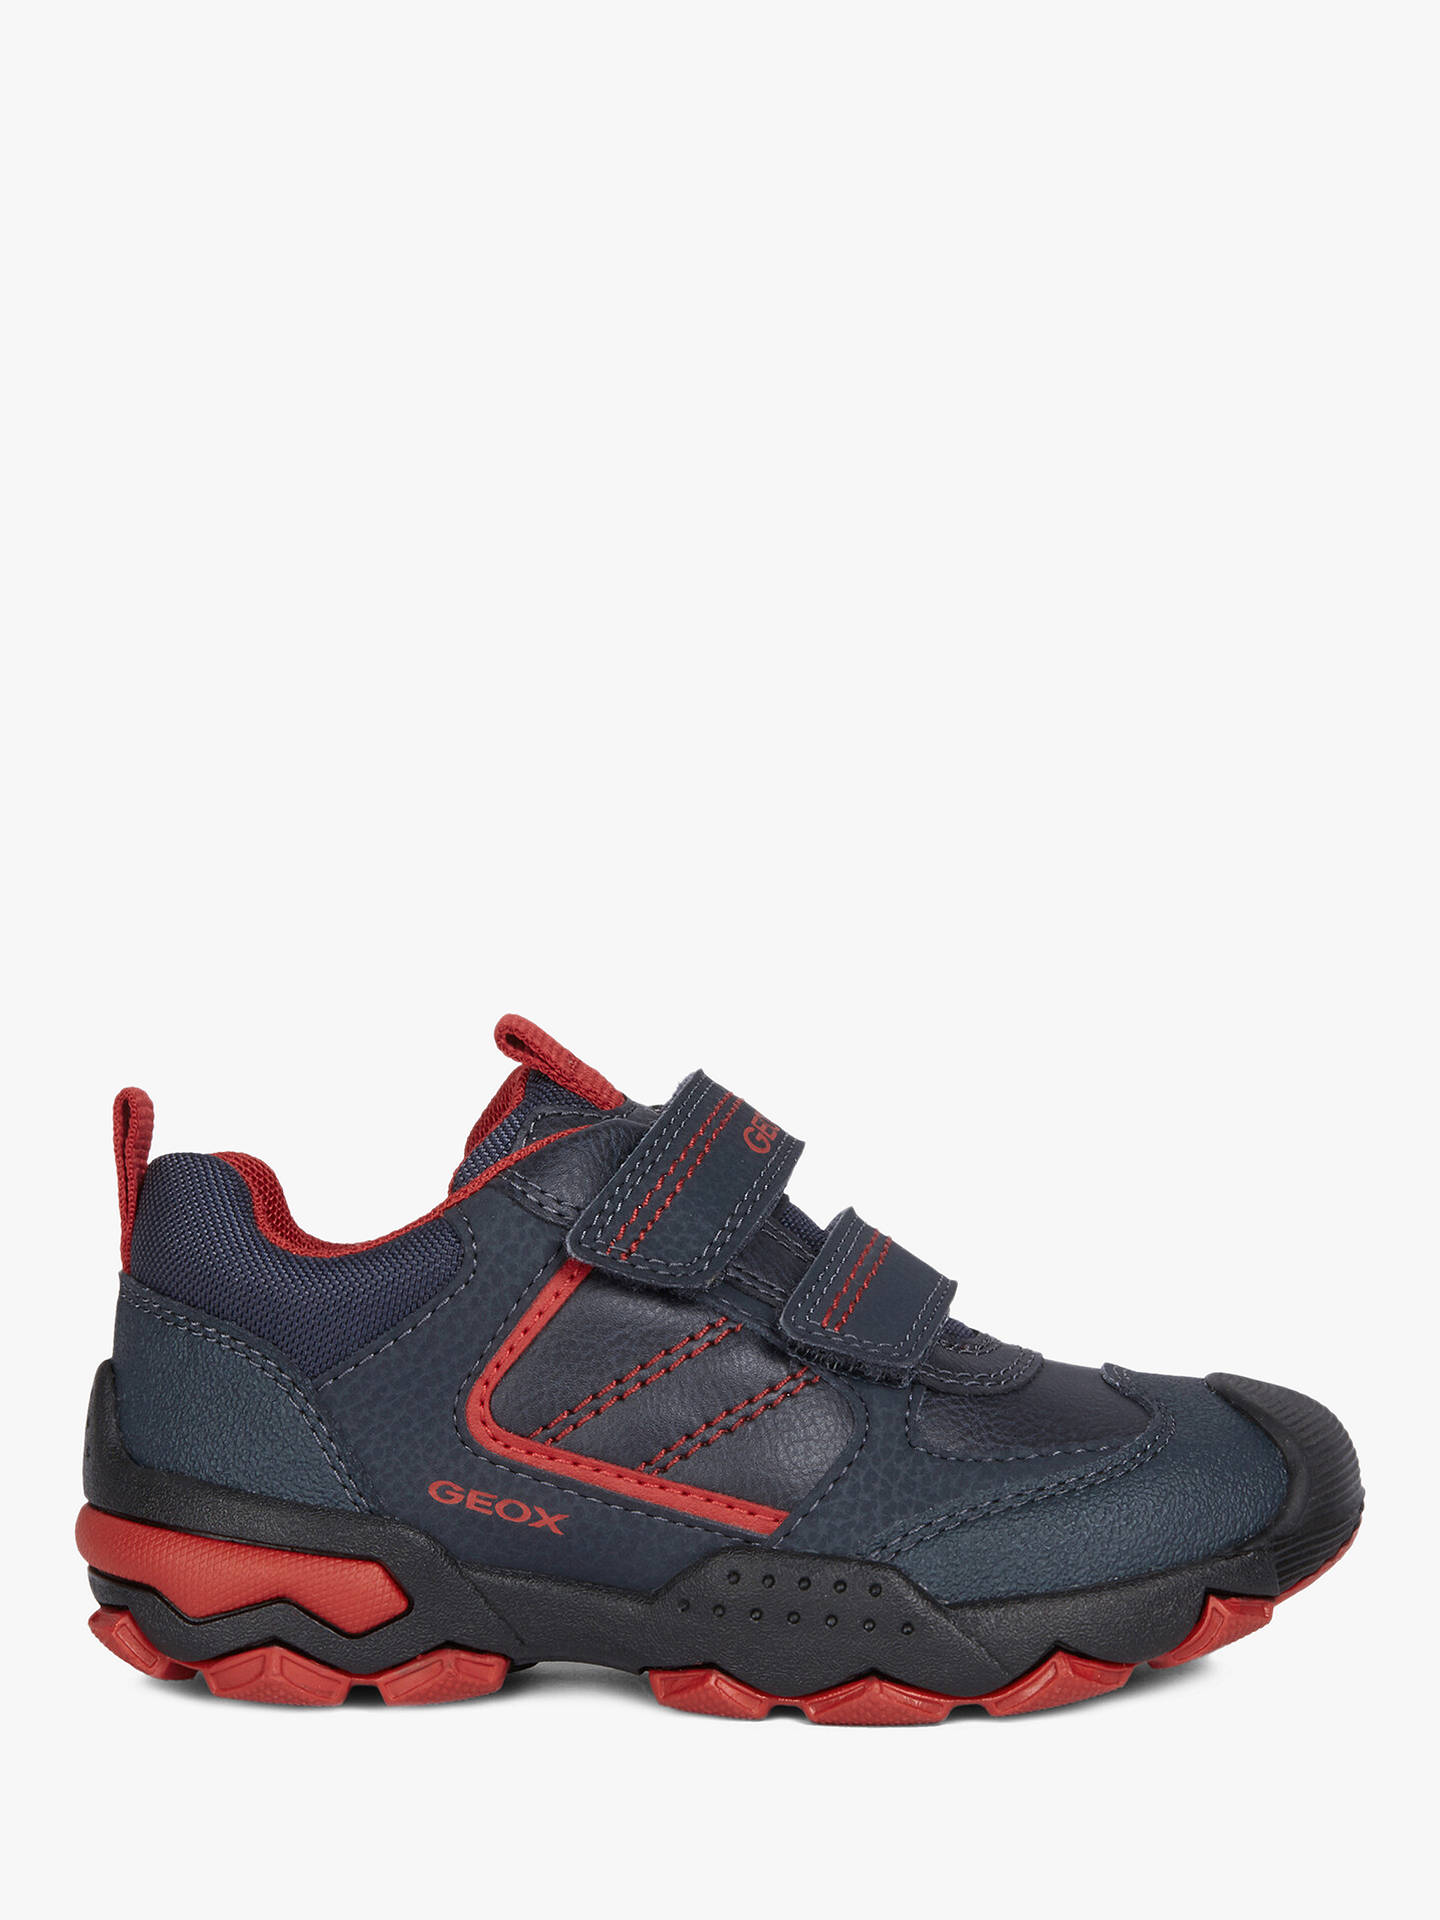 performance sportswear super specials authentic quality Geox Children's Buller Shoes, Navy/Dark Red at John Lewis ...